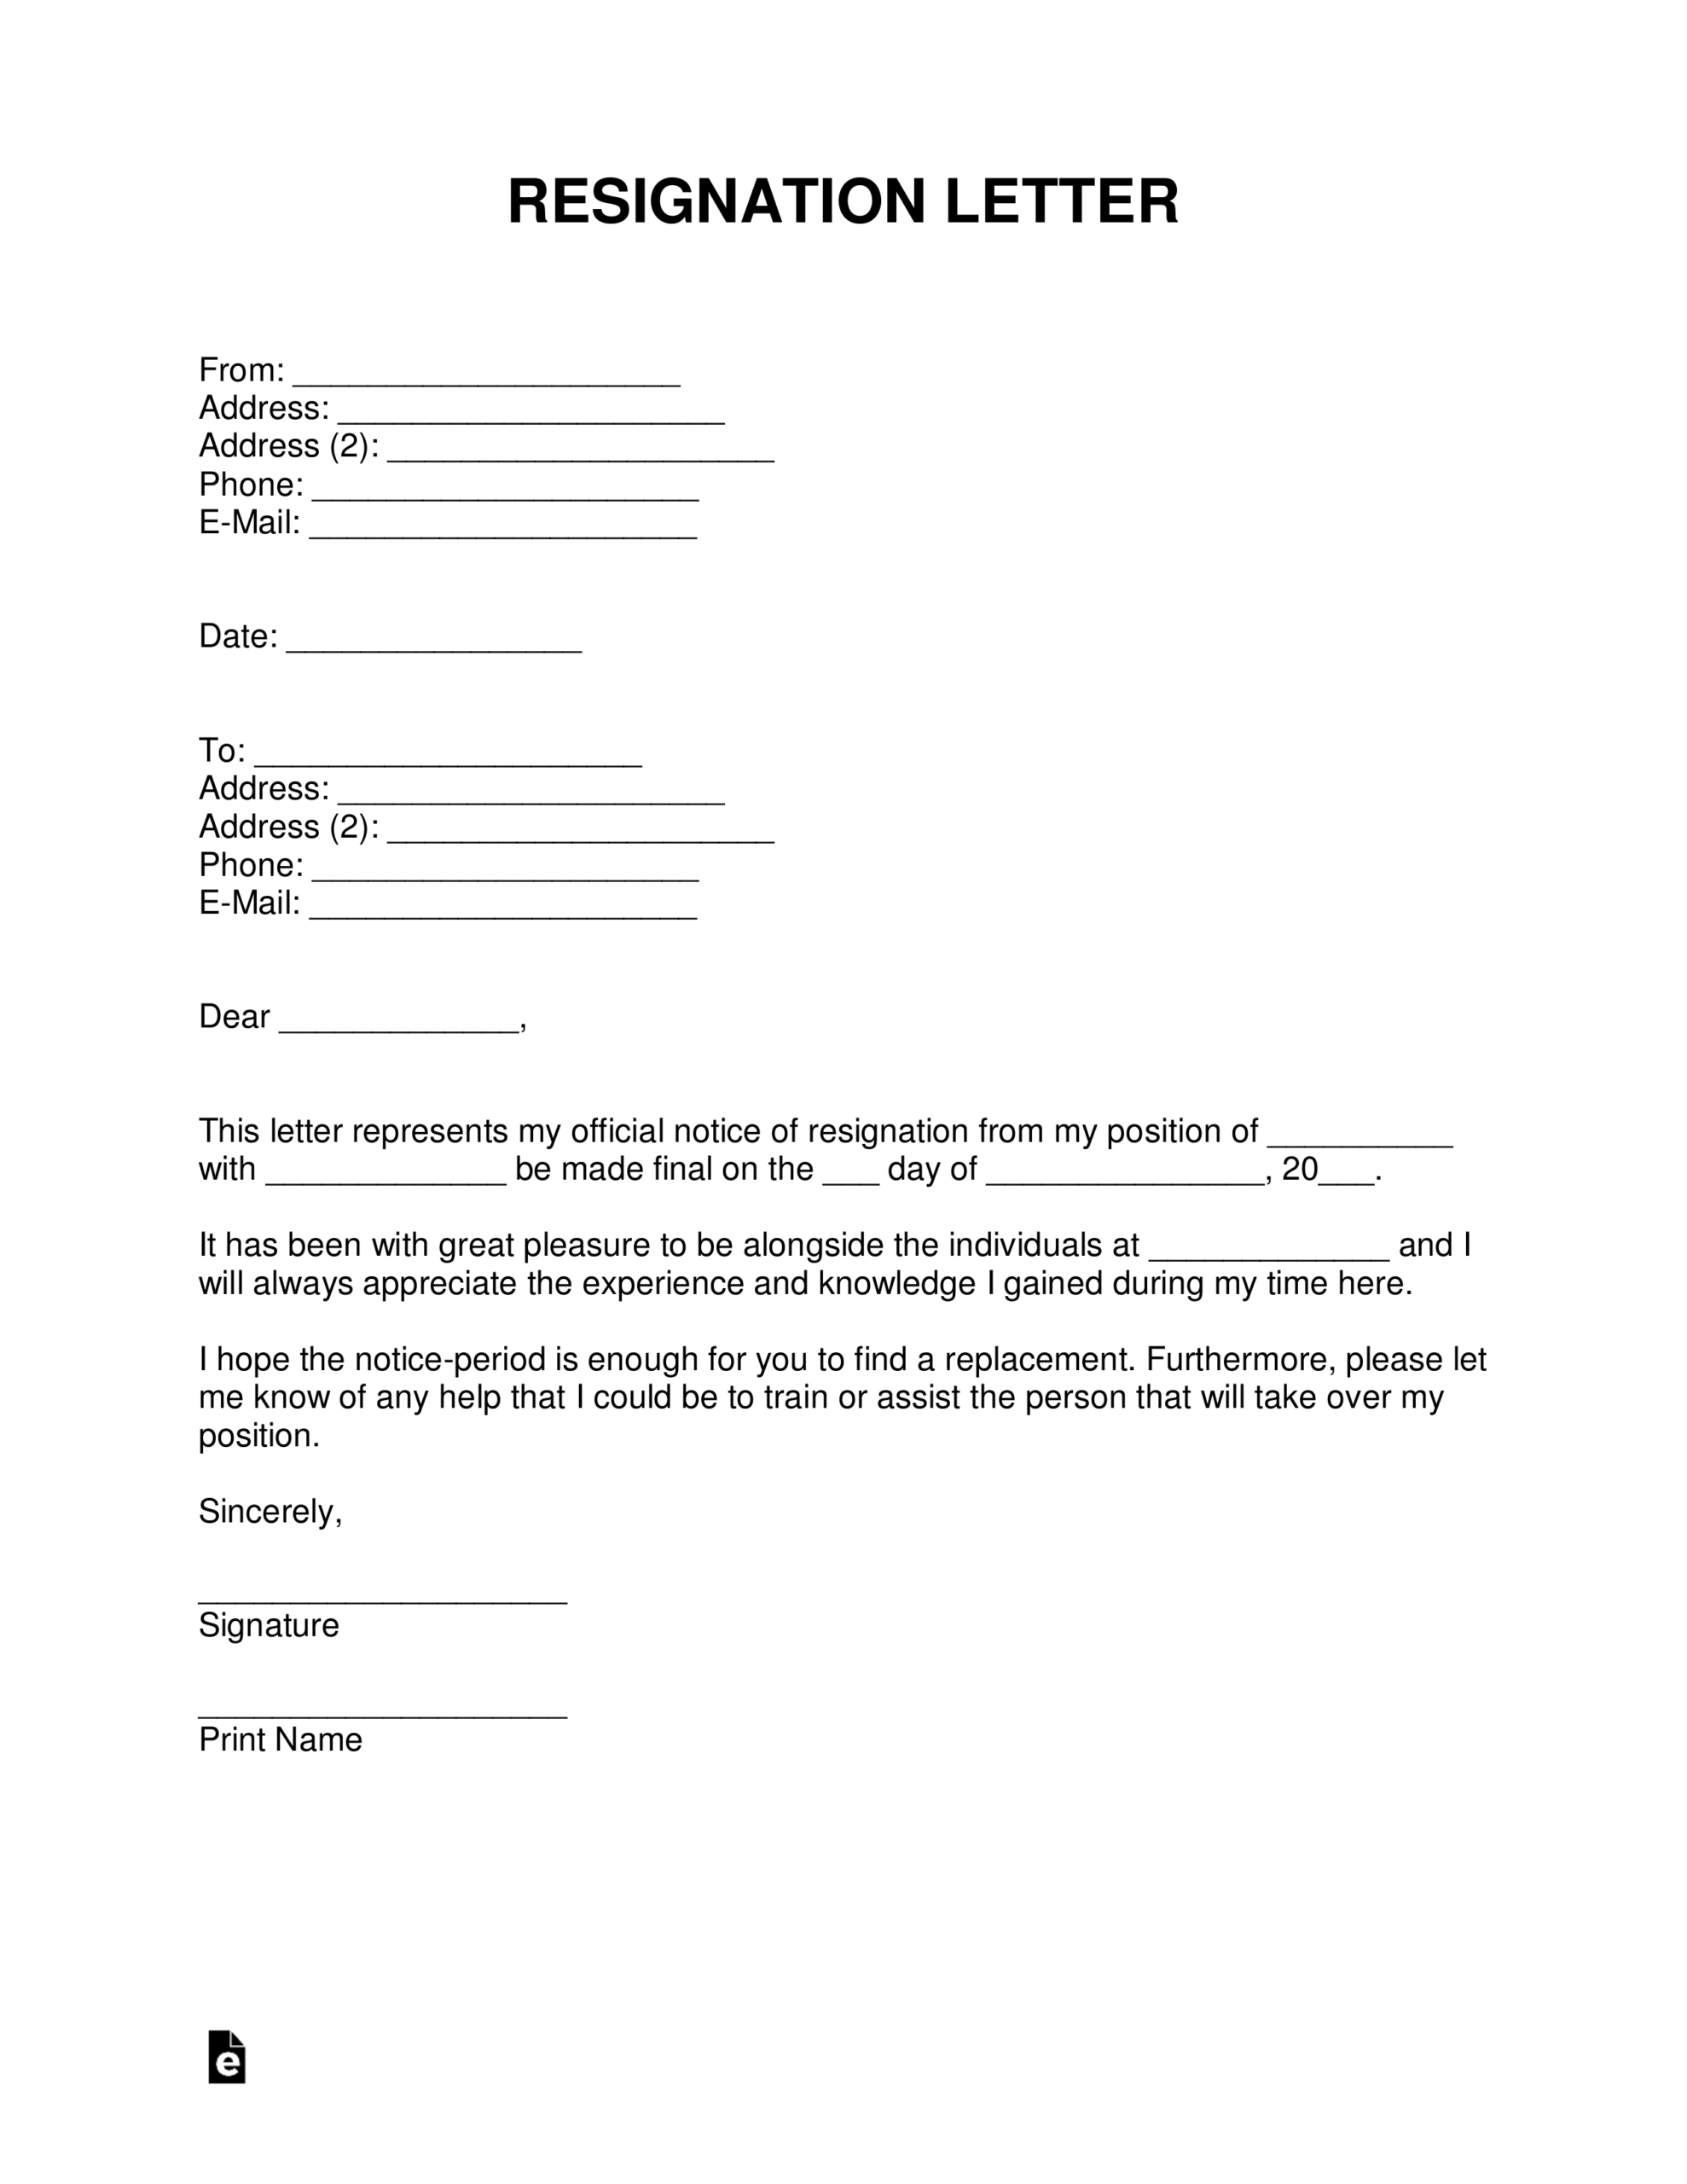 Free Resignation Letters | Templates & Samples – Pdf | Word Intended For Two Week Notice Template Word